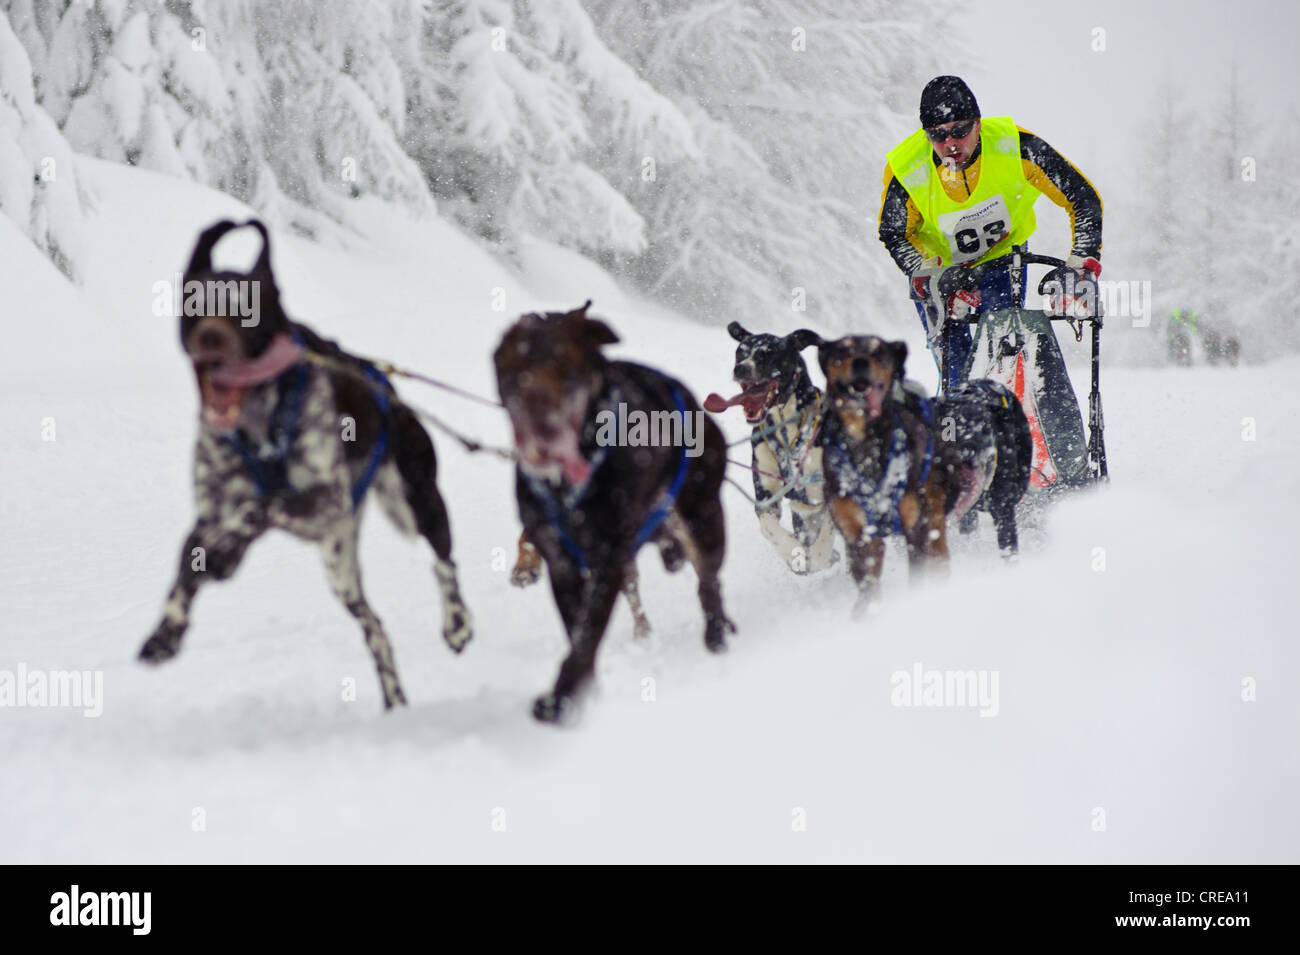 Border Rush Dog Sled race in Jakuszyce, Poland. - Stock Image